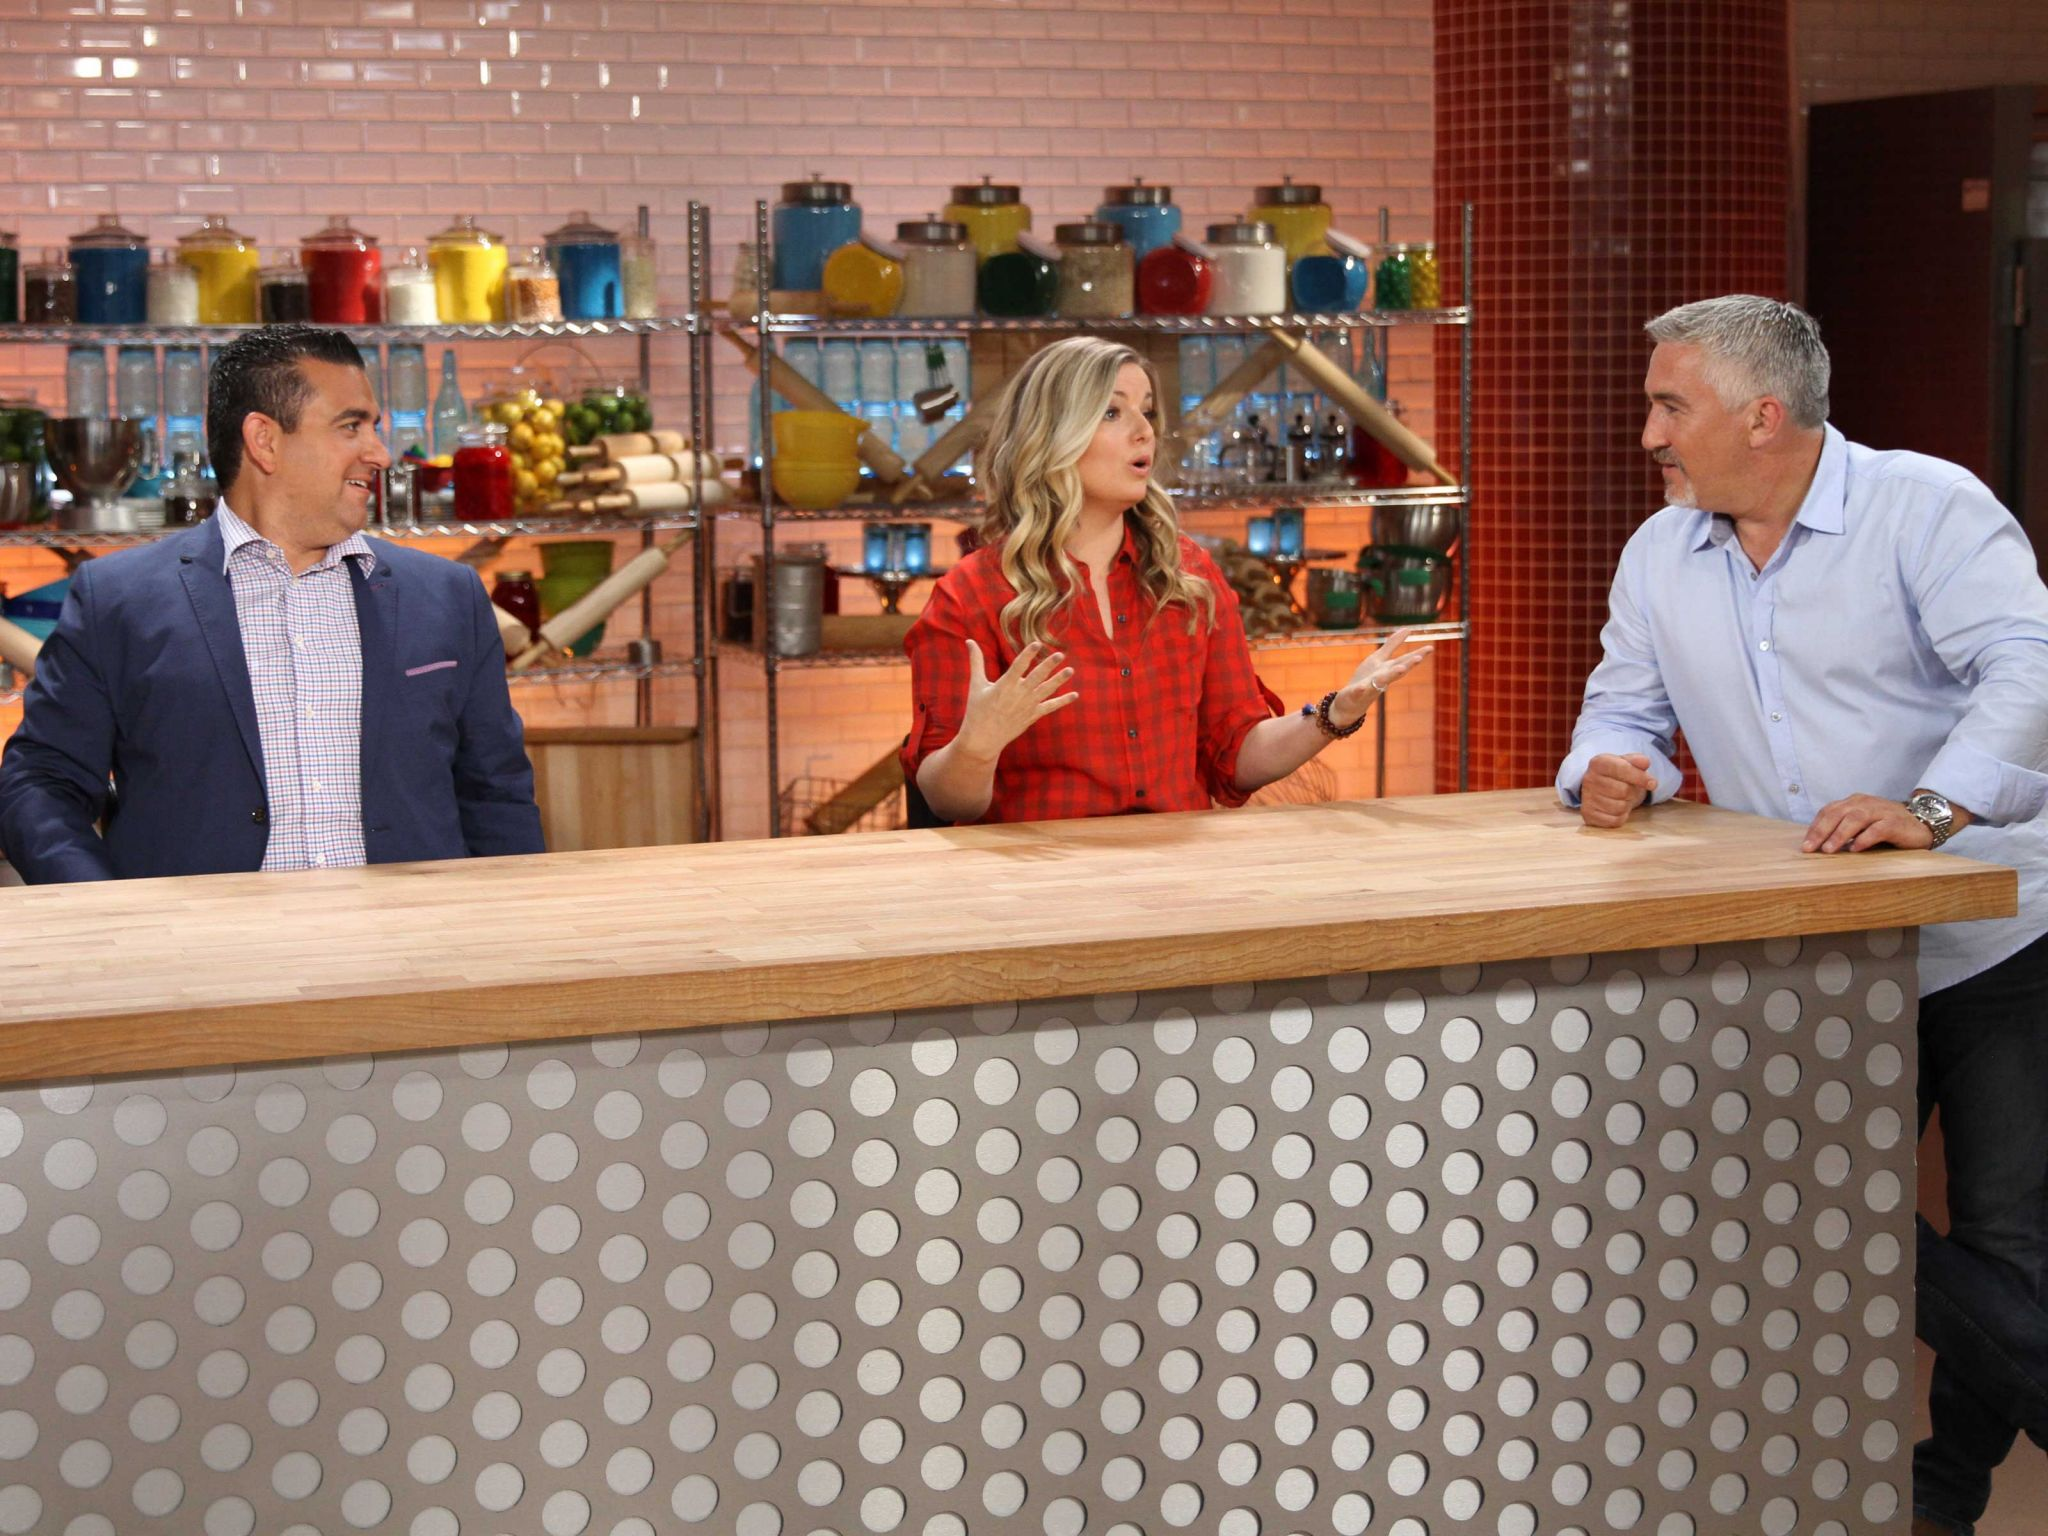 Cake Tv Show Food Network : Buddy Valastro heats up Food Network s Bakers vs. Fakers ...